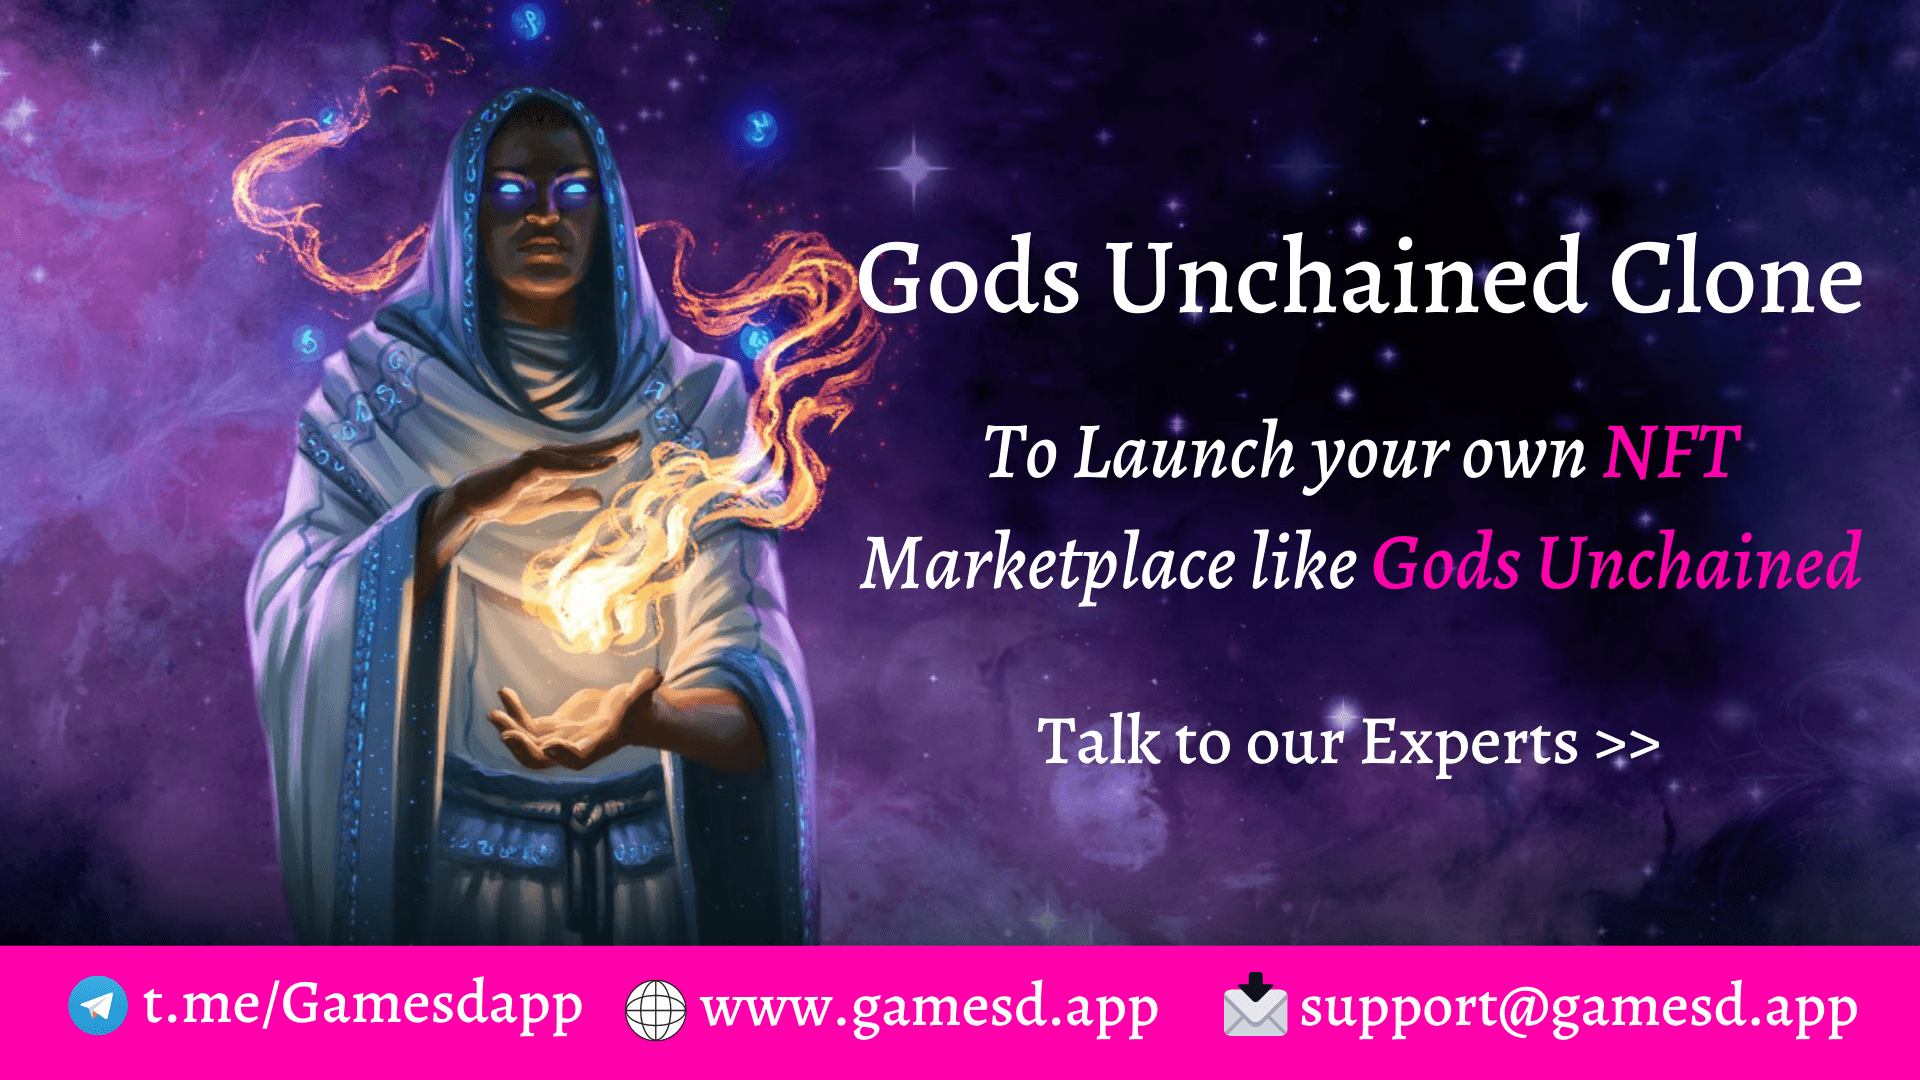 Gods Unchained Clone - Build NFT based Trading Card Game like Gods Unchained